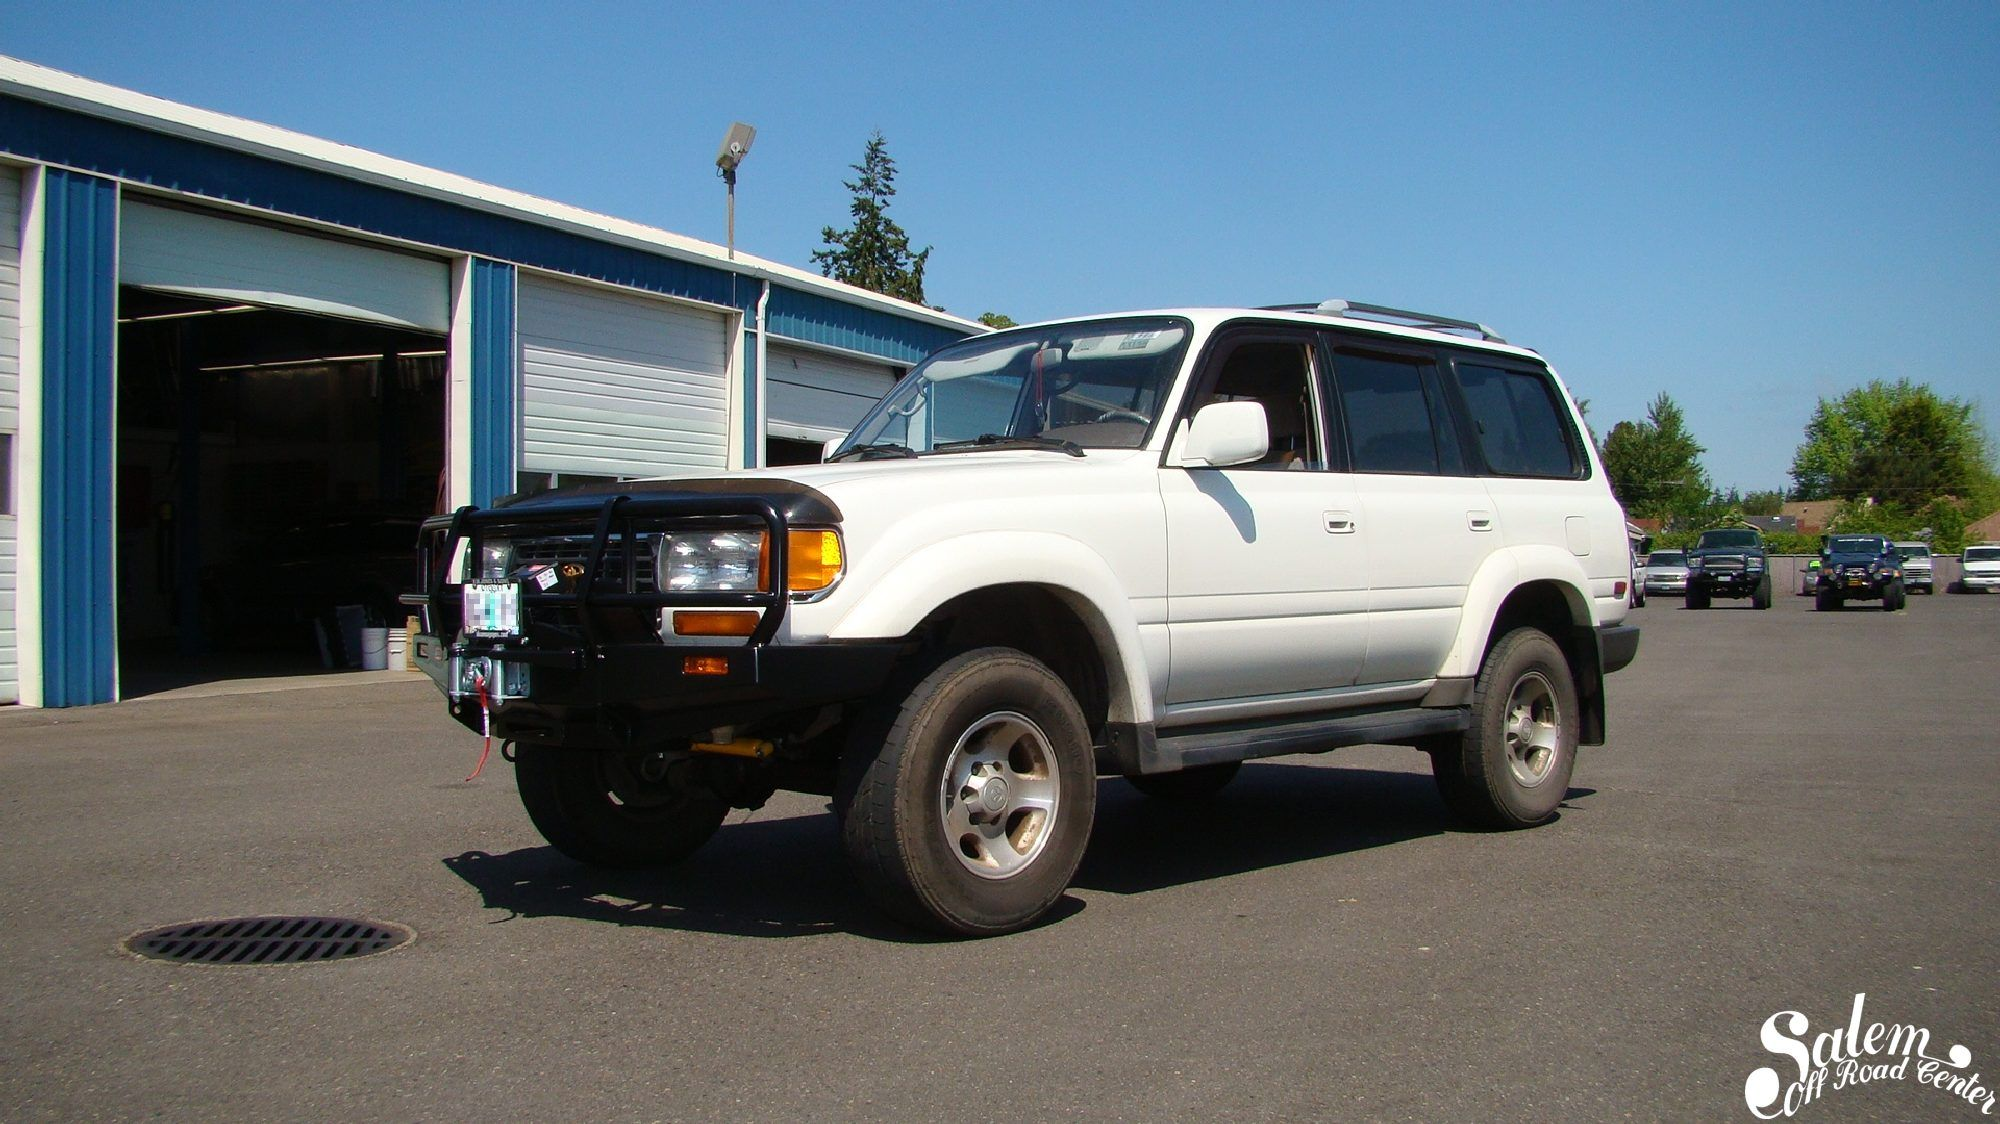 On this 1995 toyota 80 series land cruiser we installed an arb 4x4 accessories bumper with